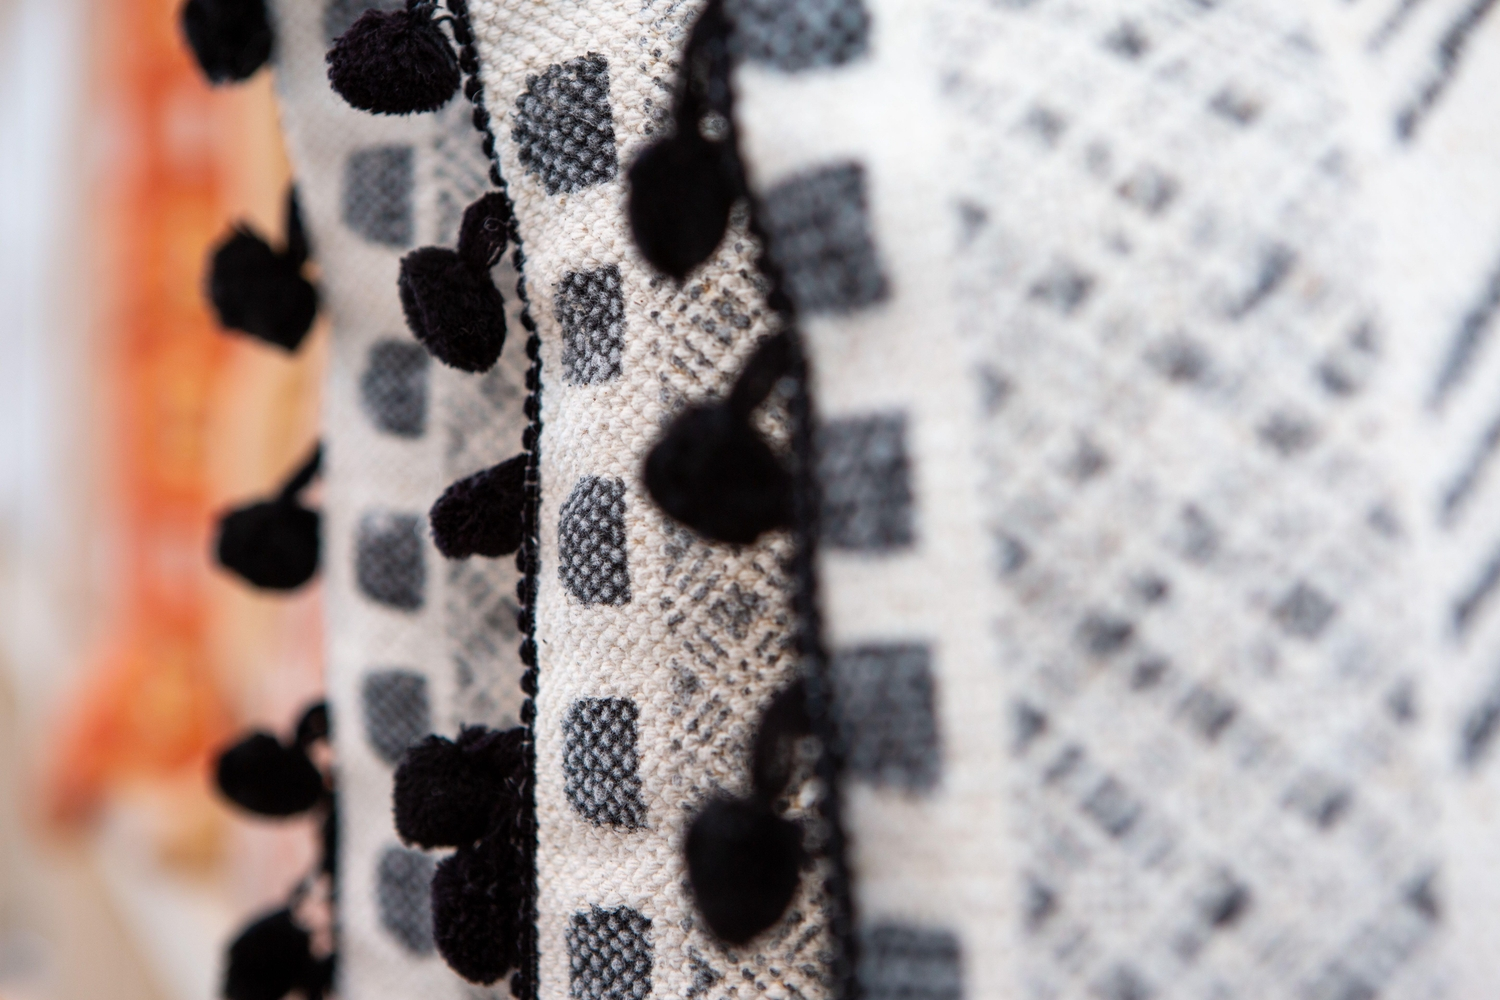 Close up of throw pillows with diffent peach and black patterns